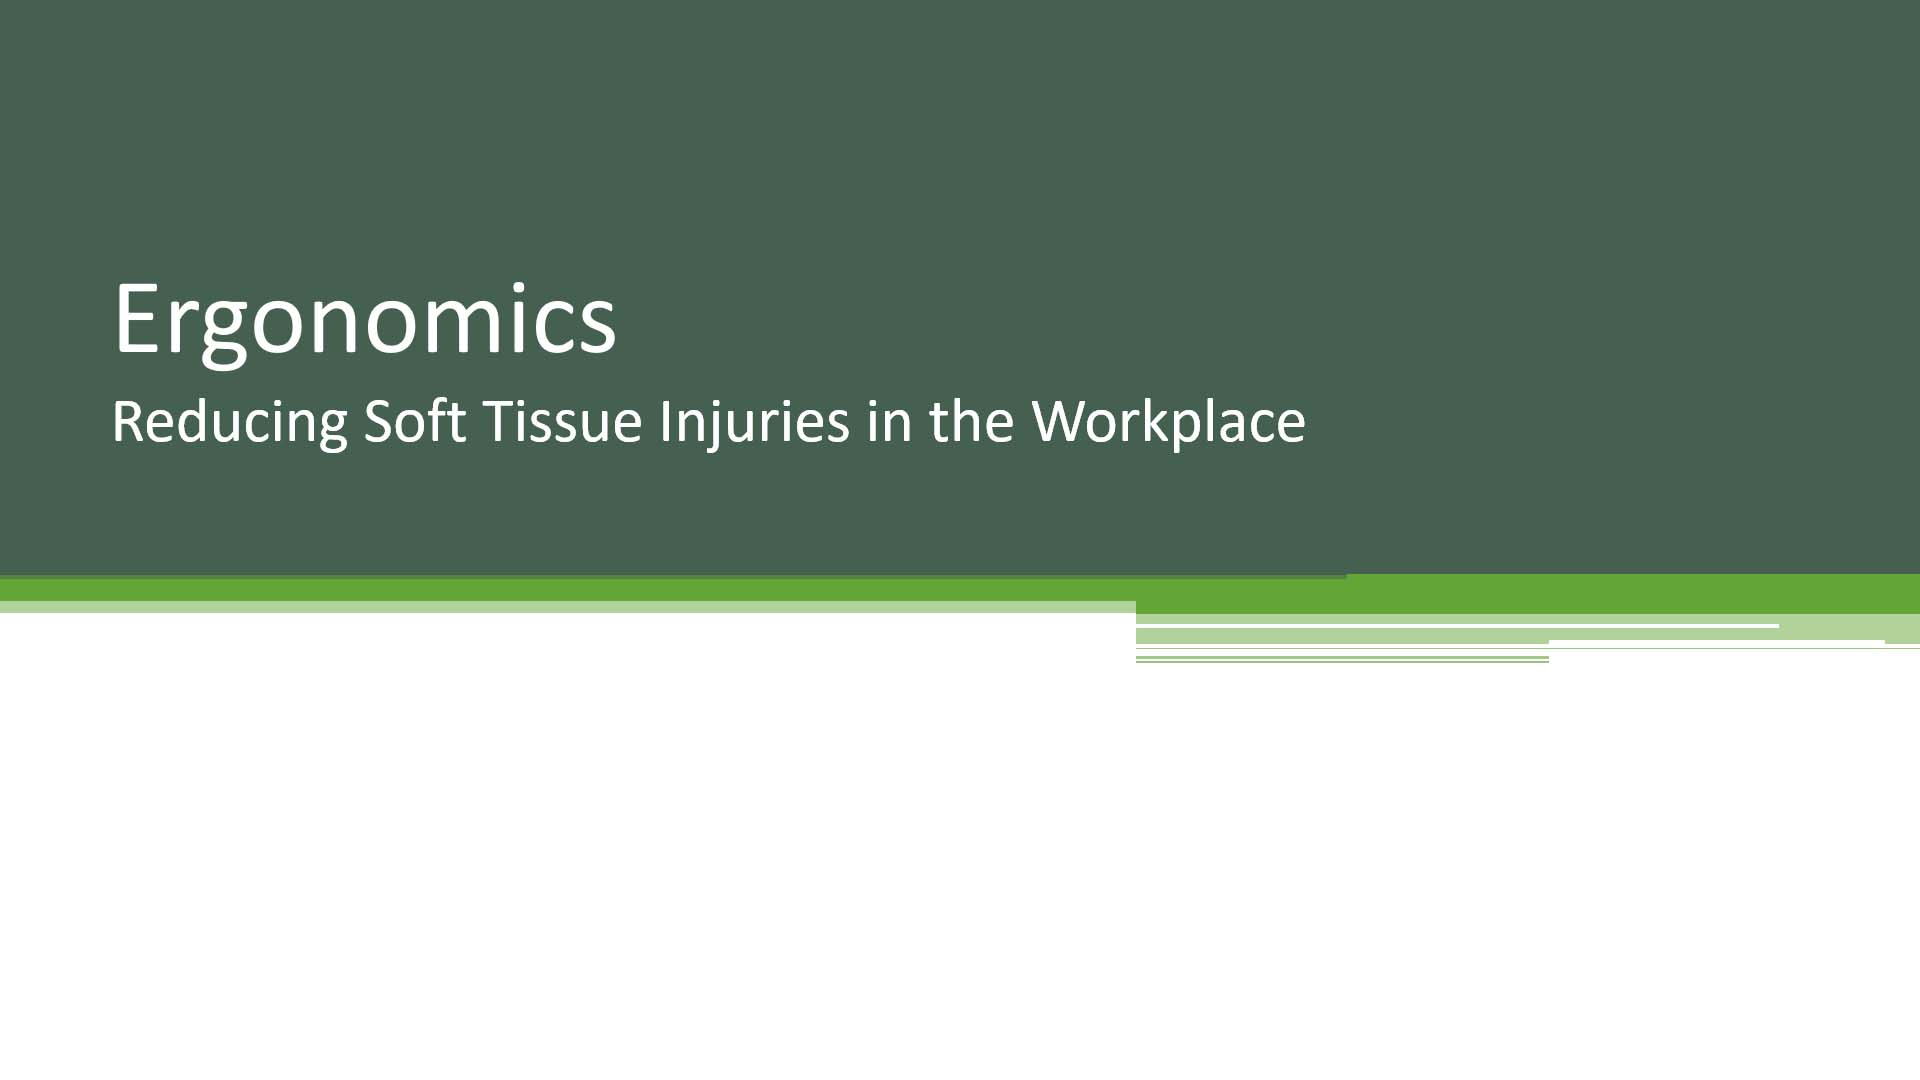 Ergonomics - Reducing Soft Tissue Injuries in the Workplace